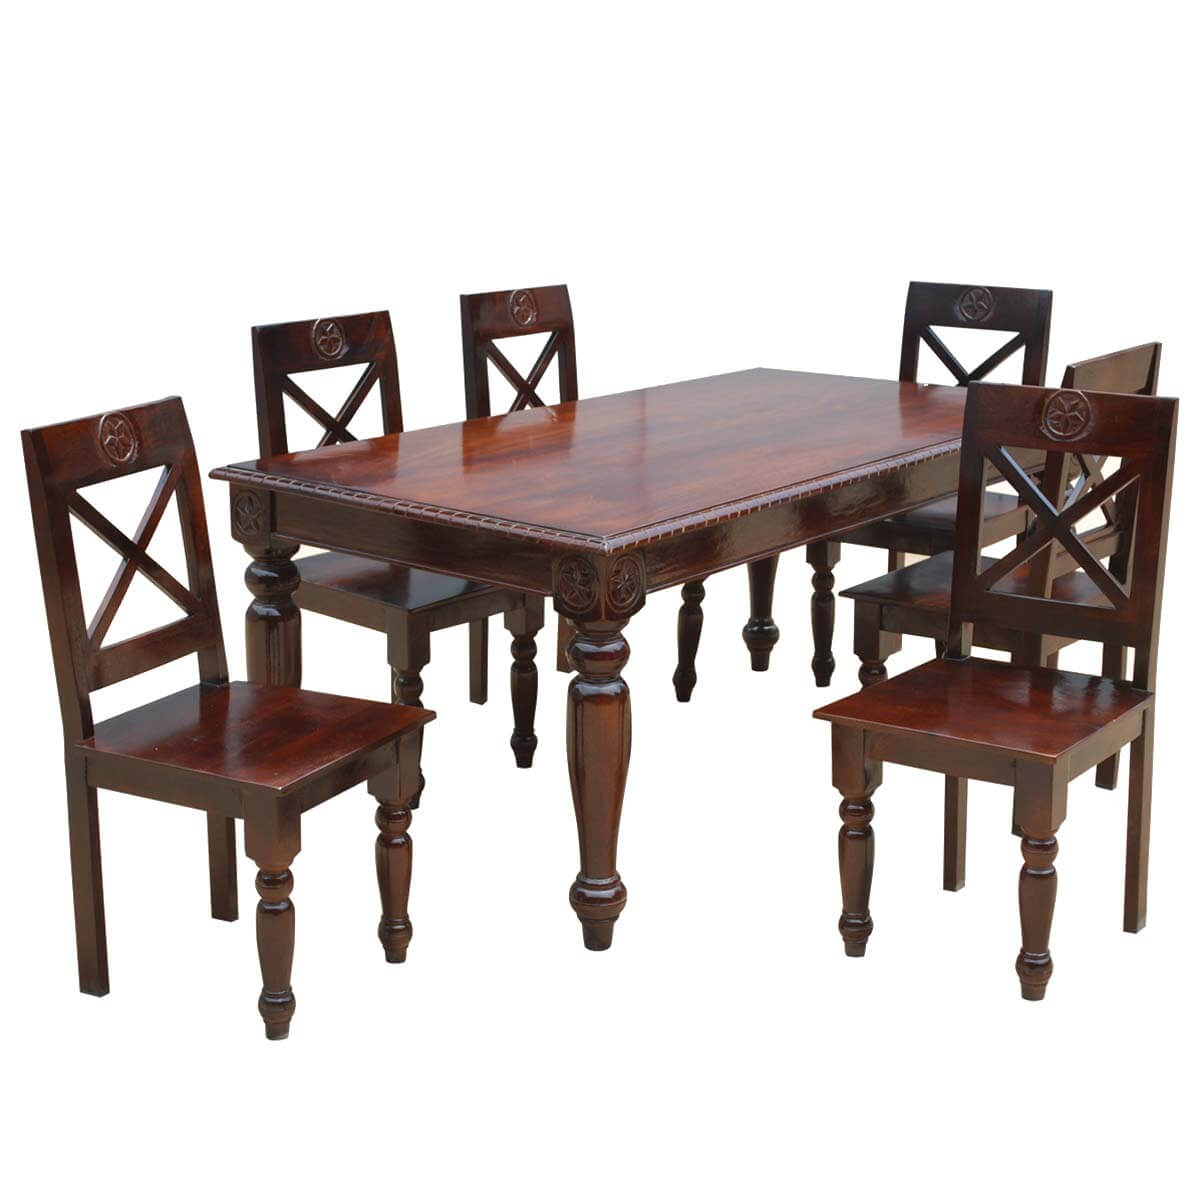 Table And Chair Dining Sets: Texas Rustic Dining Table And Chairs Set